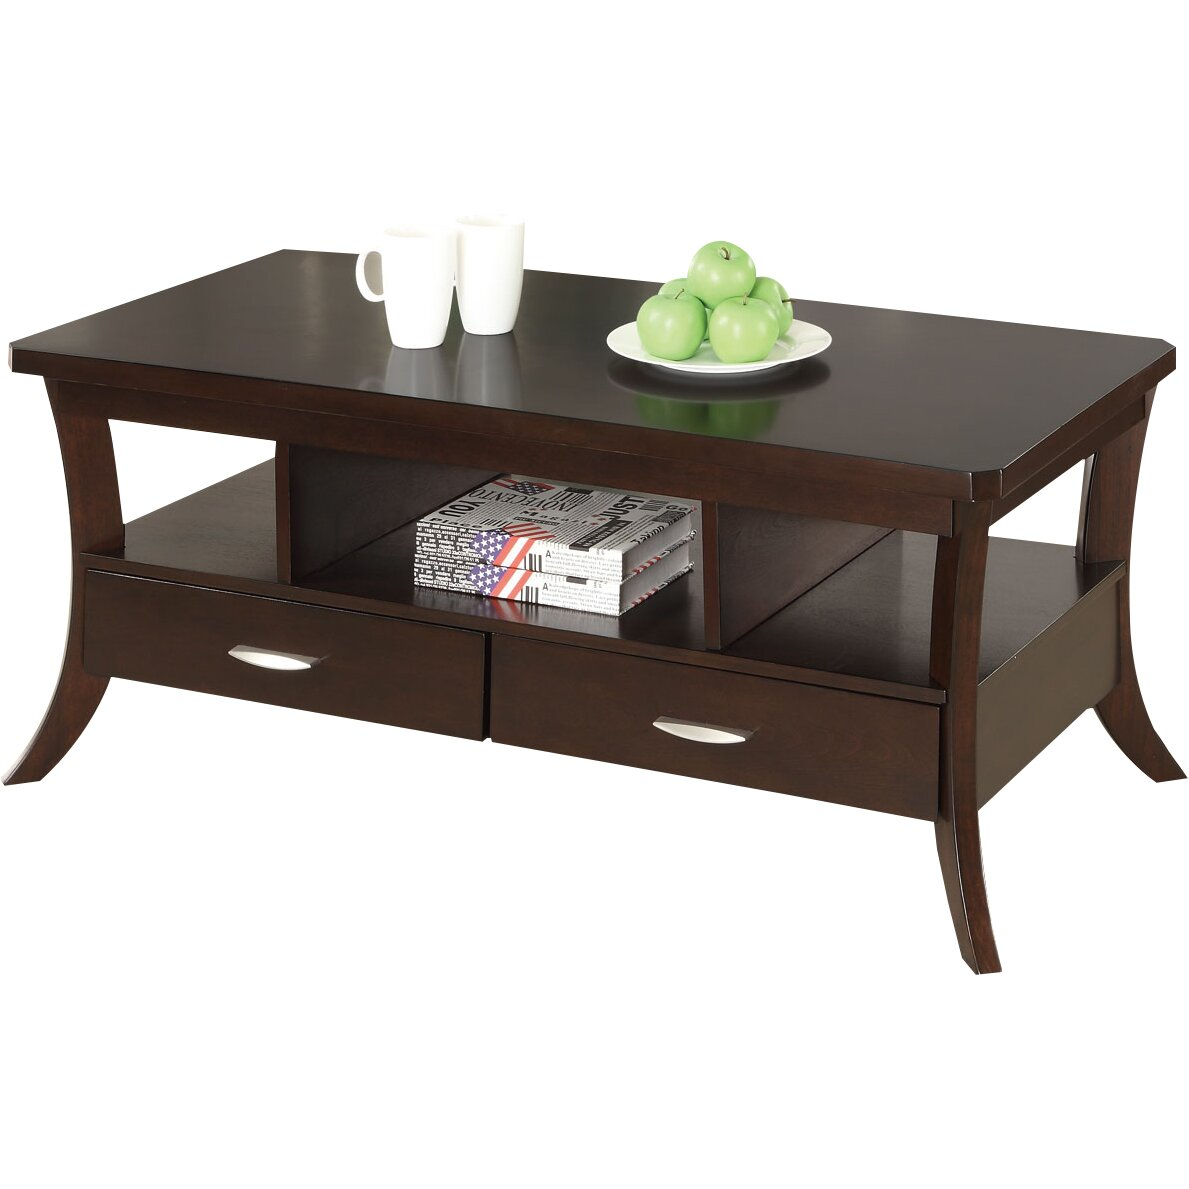 Wildon home coffee table reviews wayfair Home furniture coffee tables